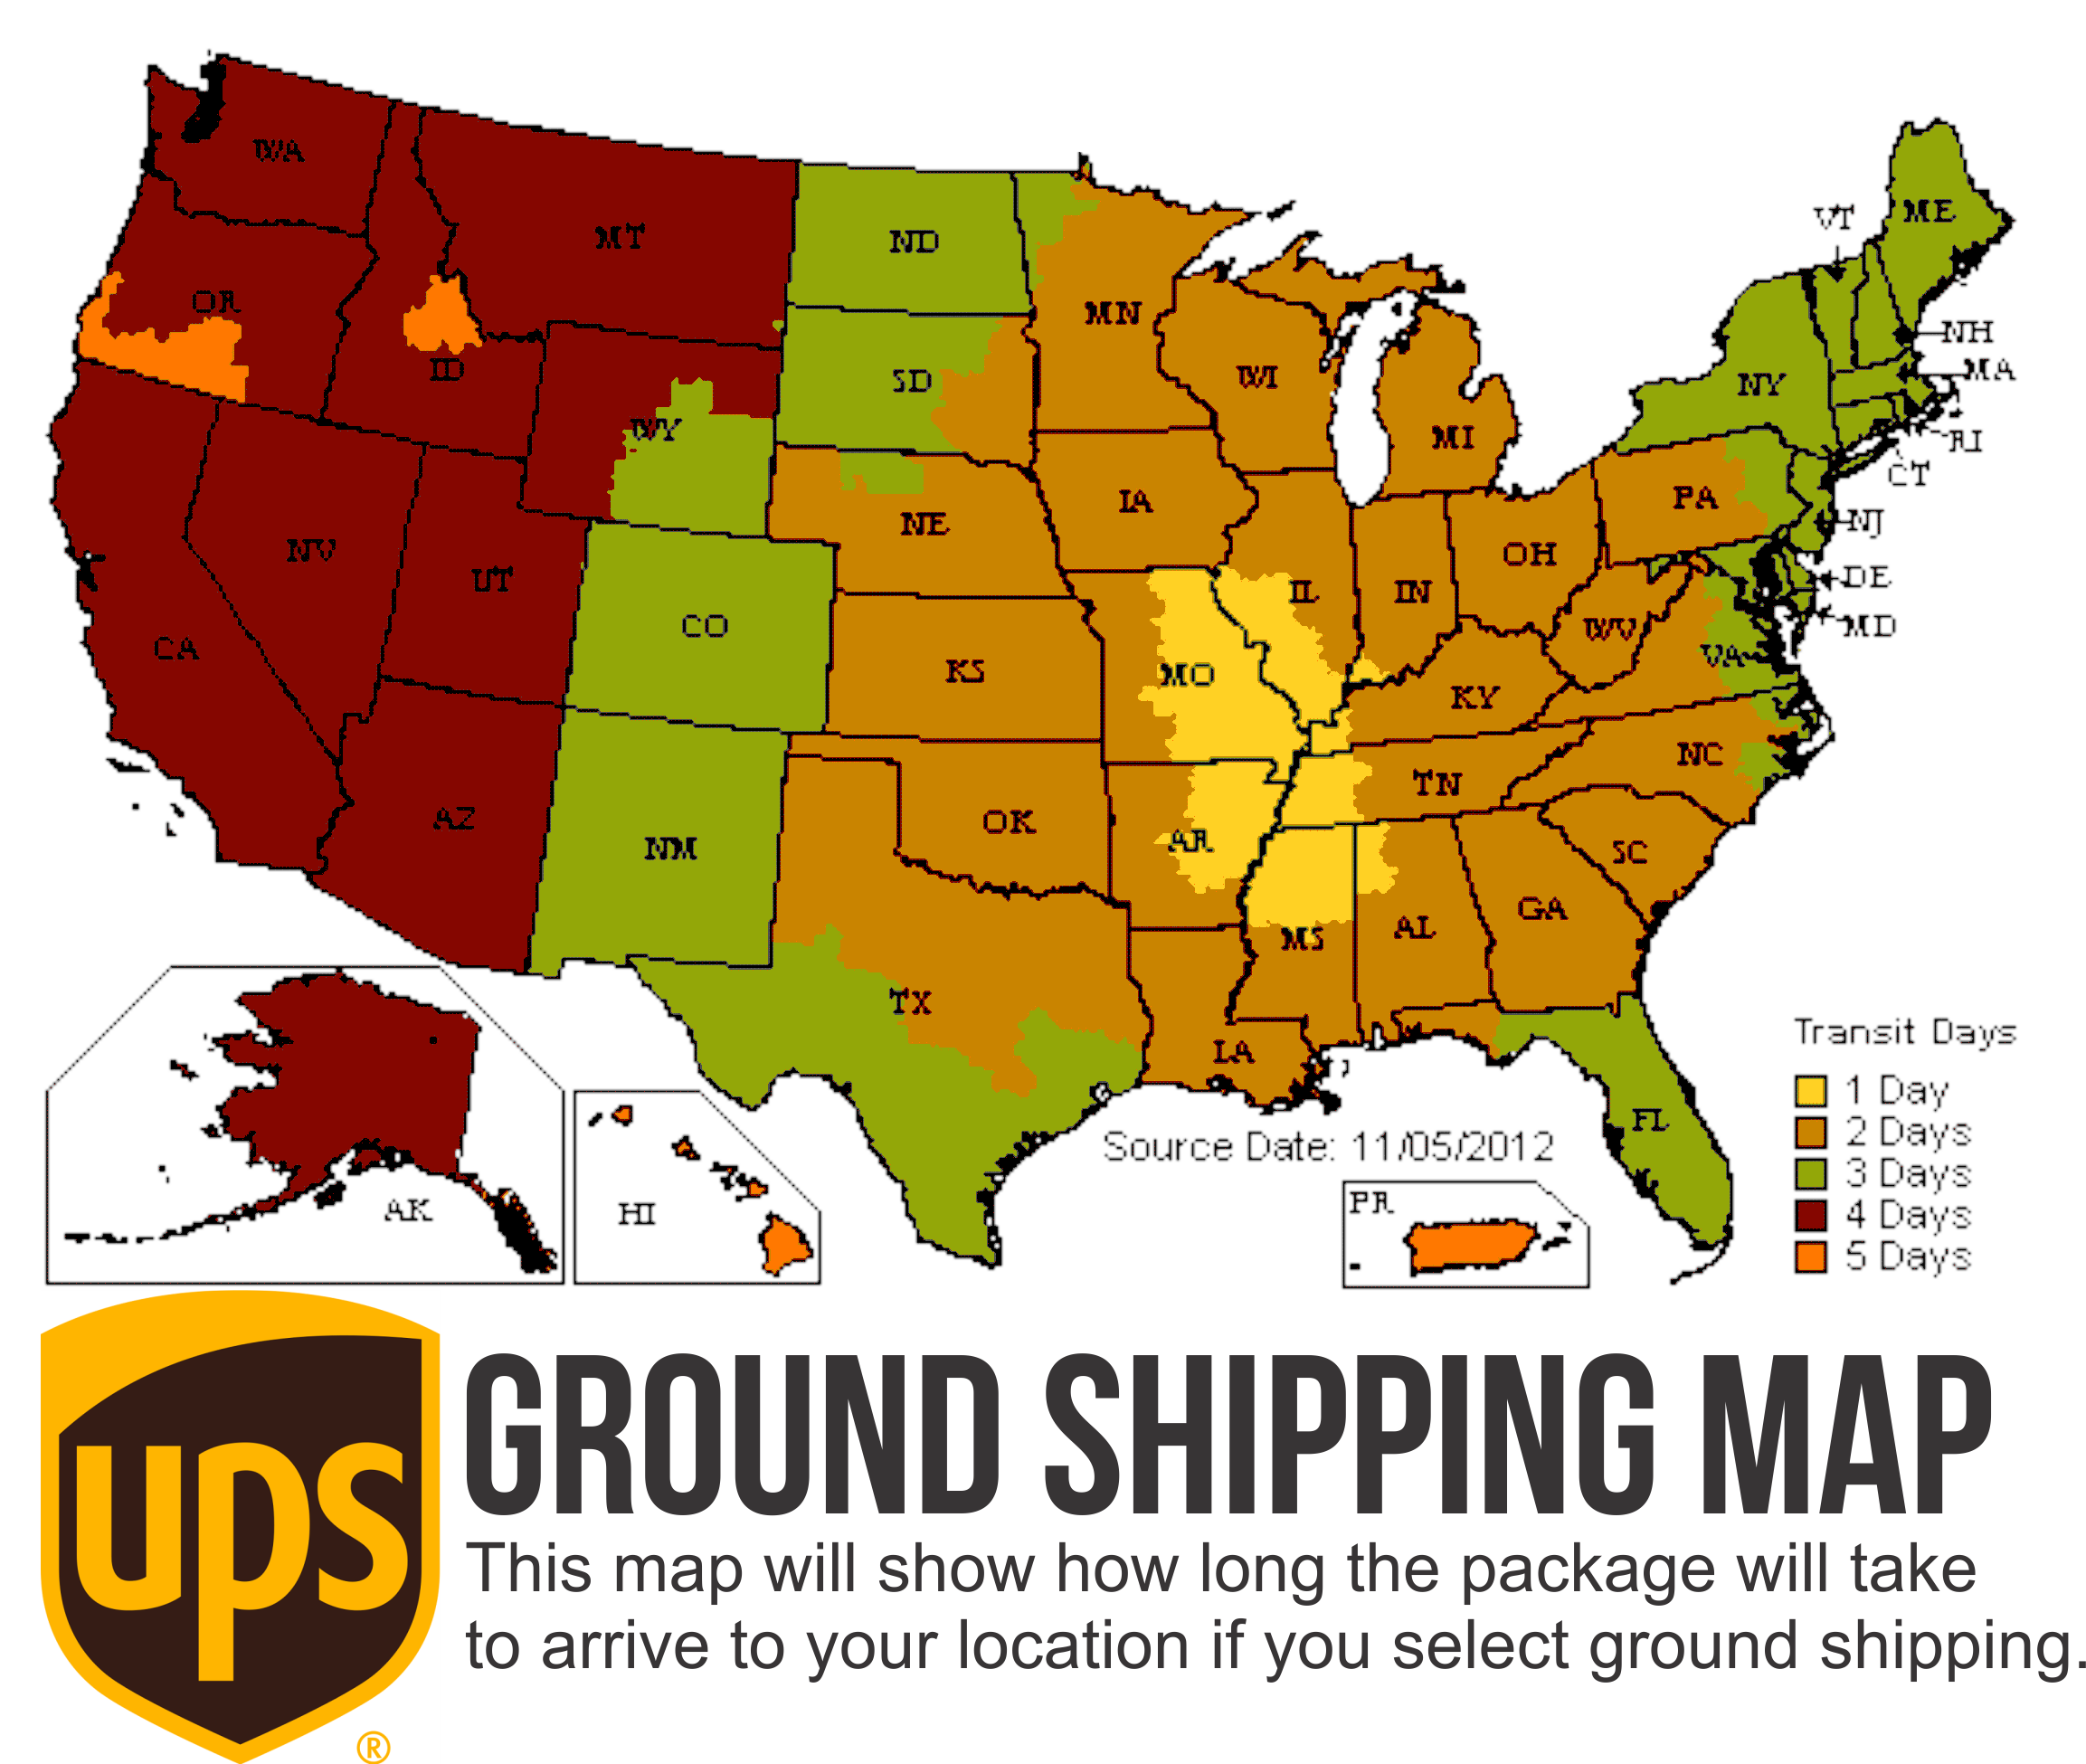 UPS Zone Map   Semo Imprints Zone Map on us zip code map, west orange nj zoning map, simple zoning map, state map, nassau county town zip code map, us cable map, davis county utah zip code map, primal map, delaware agricultural map, yamhill county oregon zoning map, city map, evanston il zoning map, los angeles california fire map, outer cape map, nave map, illea map, mt. lebanon map, weather lansing mi map, area map, sask hunting map,